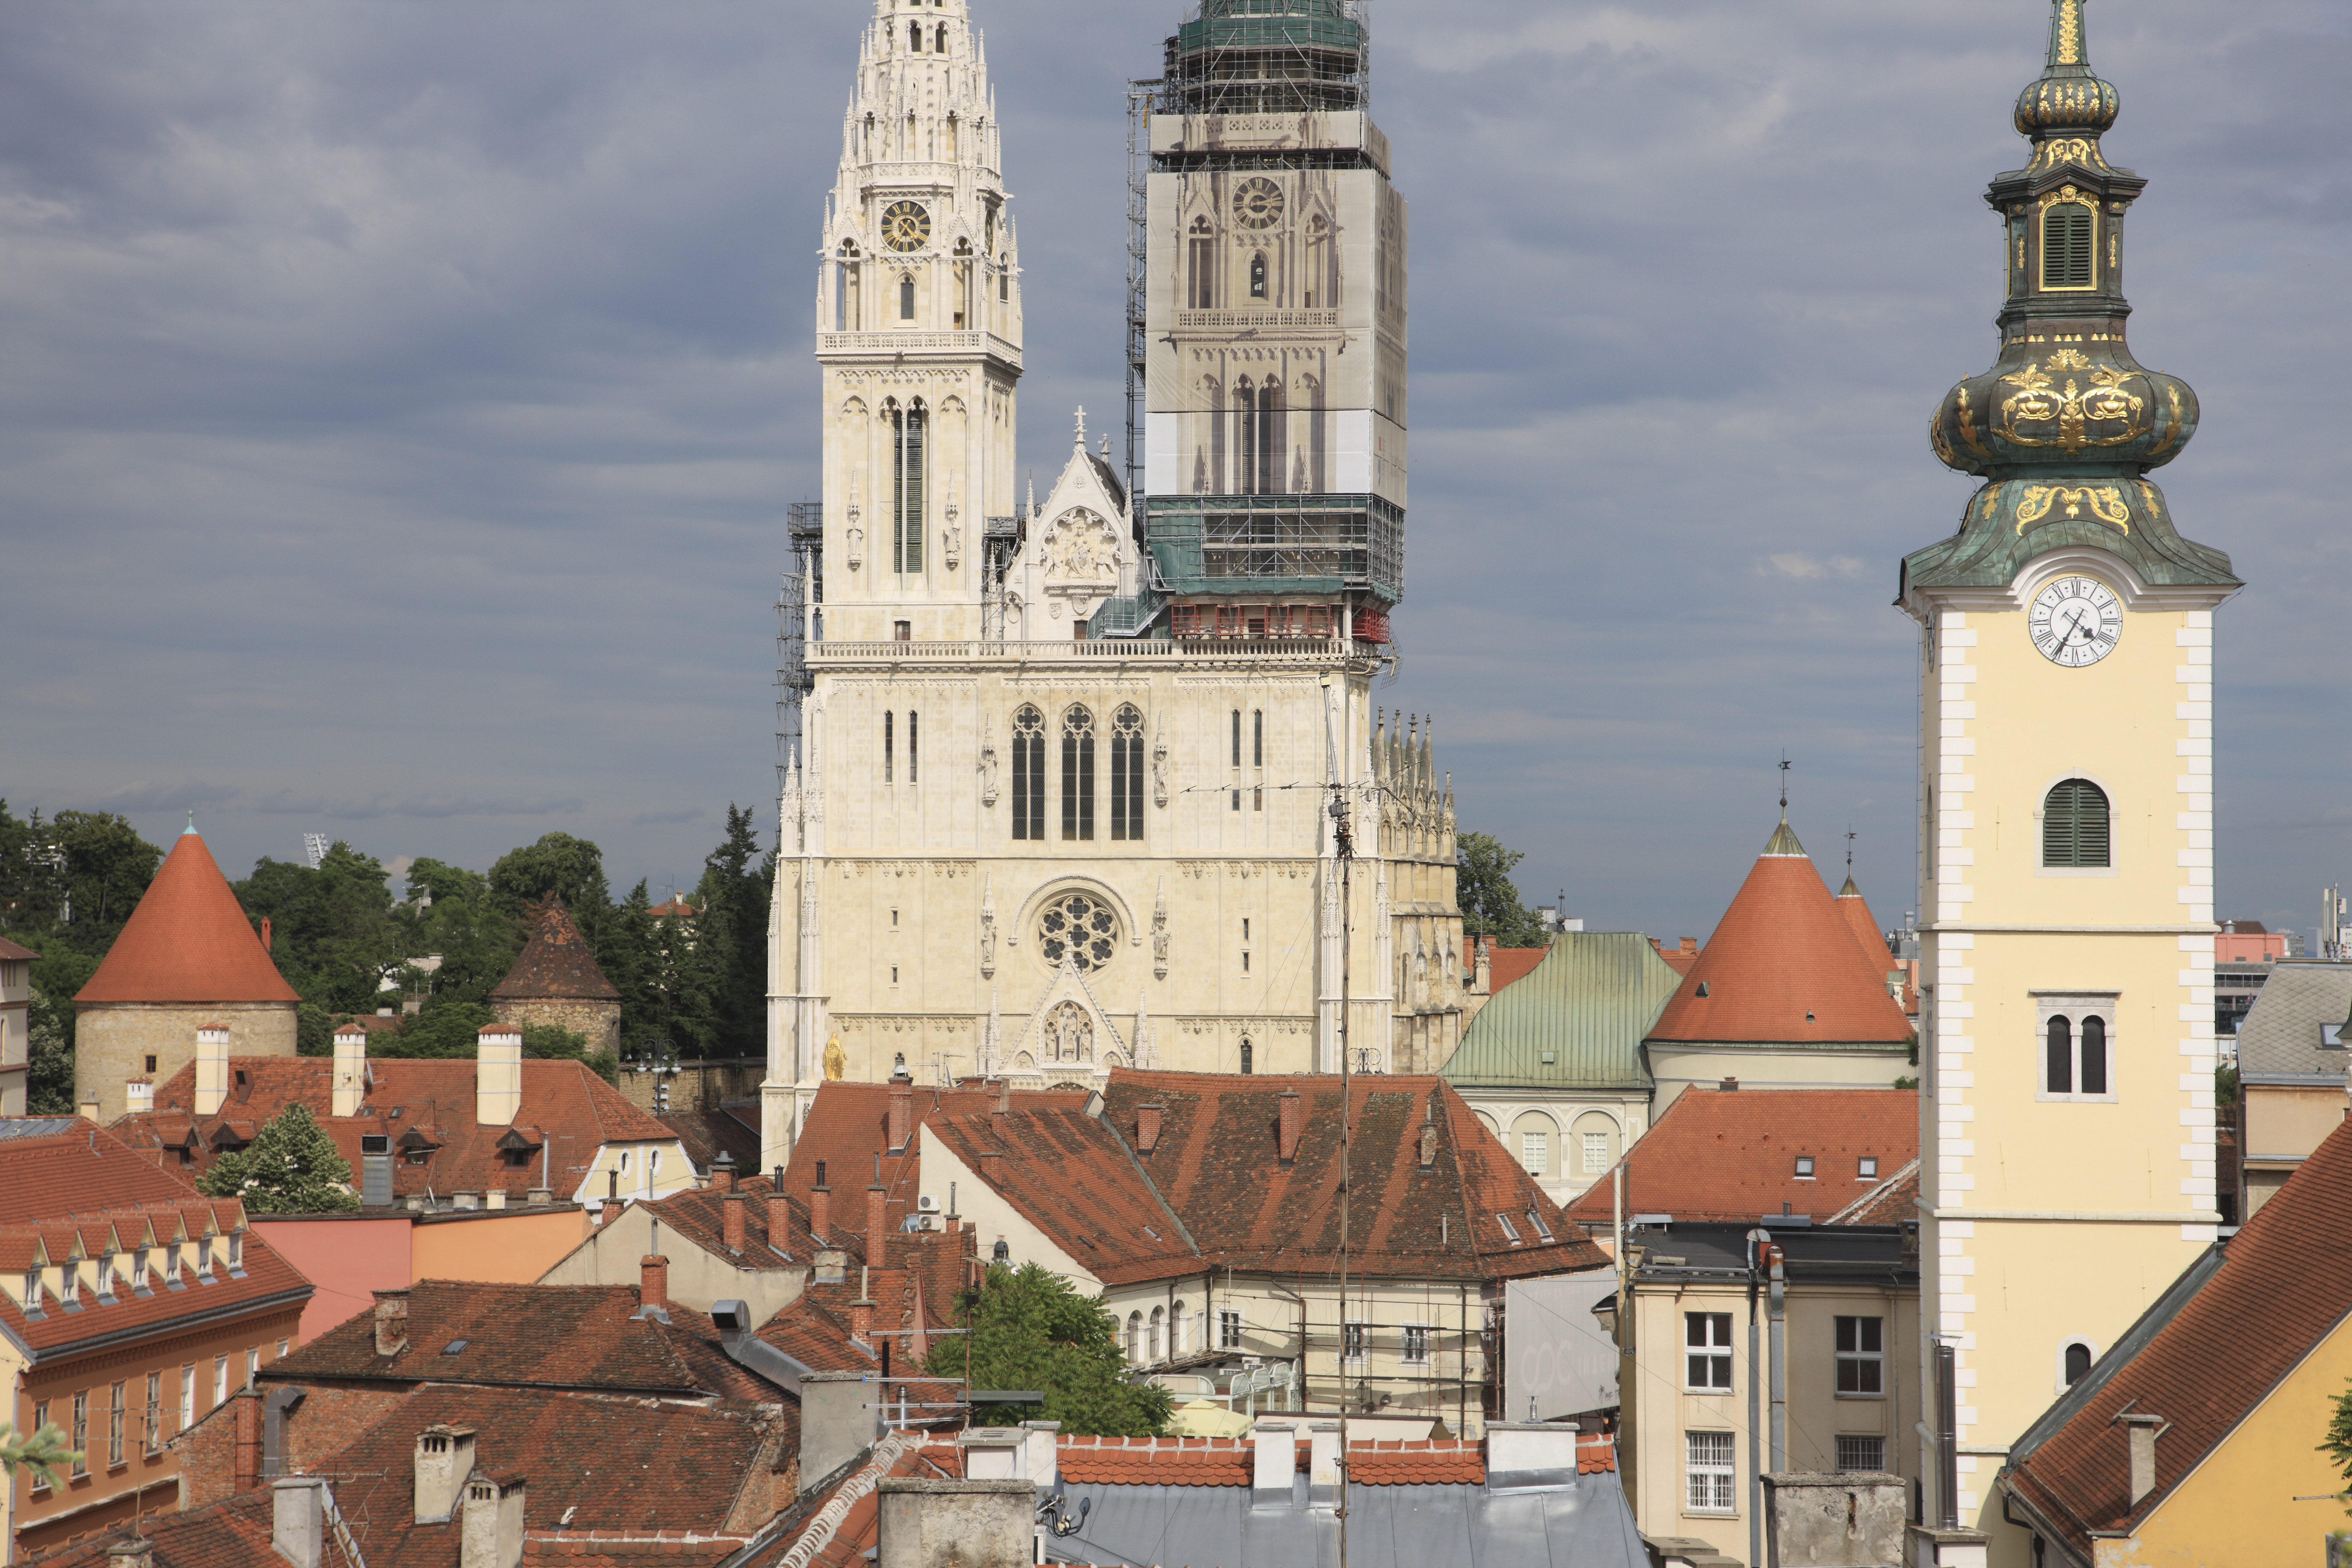 Croatia, Zagreb, View of Zagreb Cathedral and houses (Photo by: JTB Photo/UIG via Getty Images)